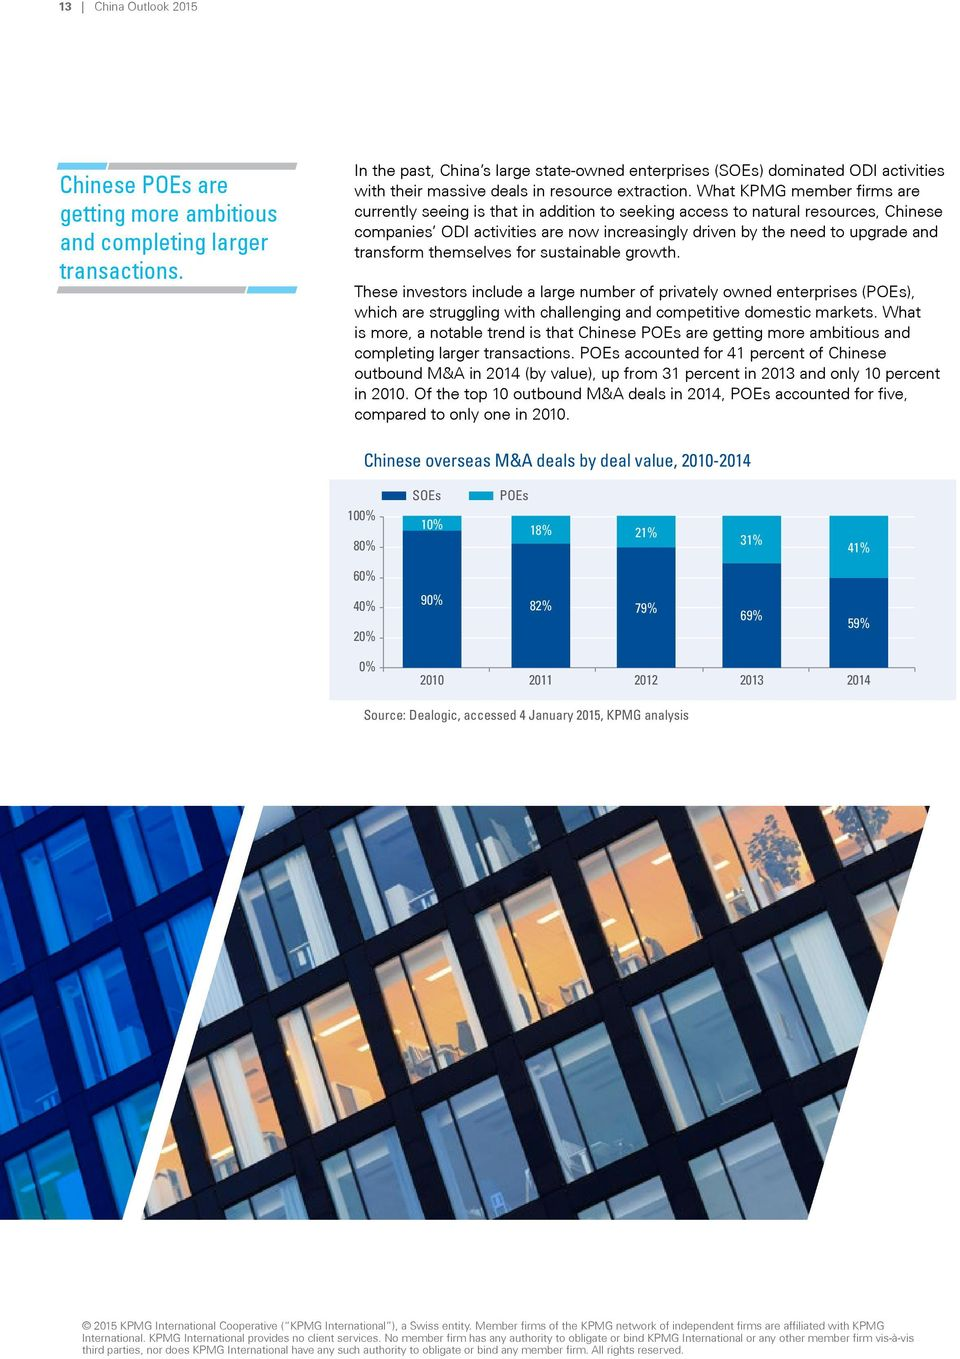 What KPMG member firms are currently seeing is that in addition to seeking access to natural resources, Chinese companies ODI activities are now increasingly driven by the need to upgrade and